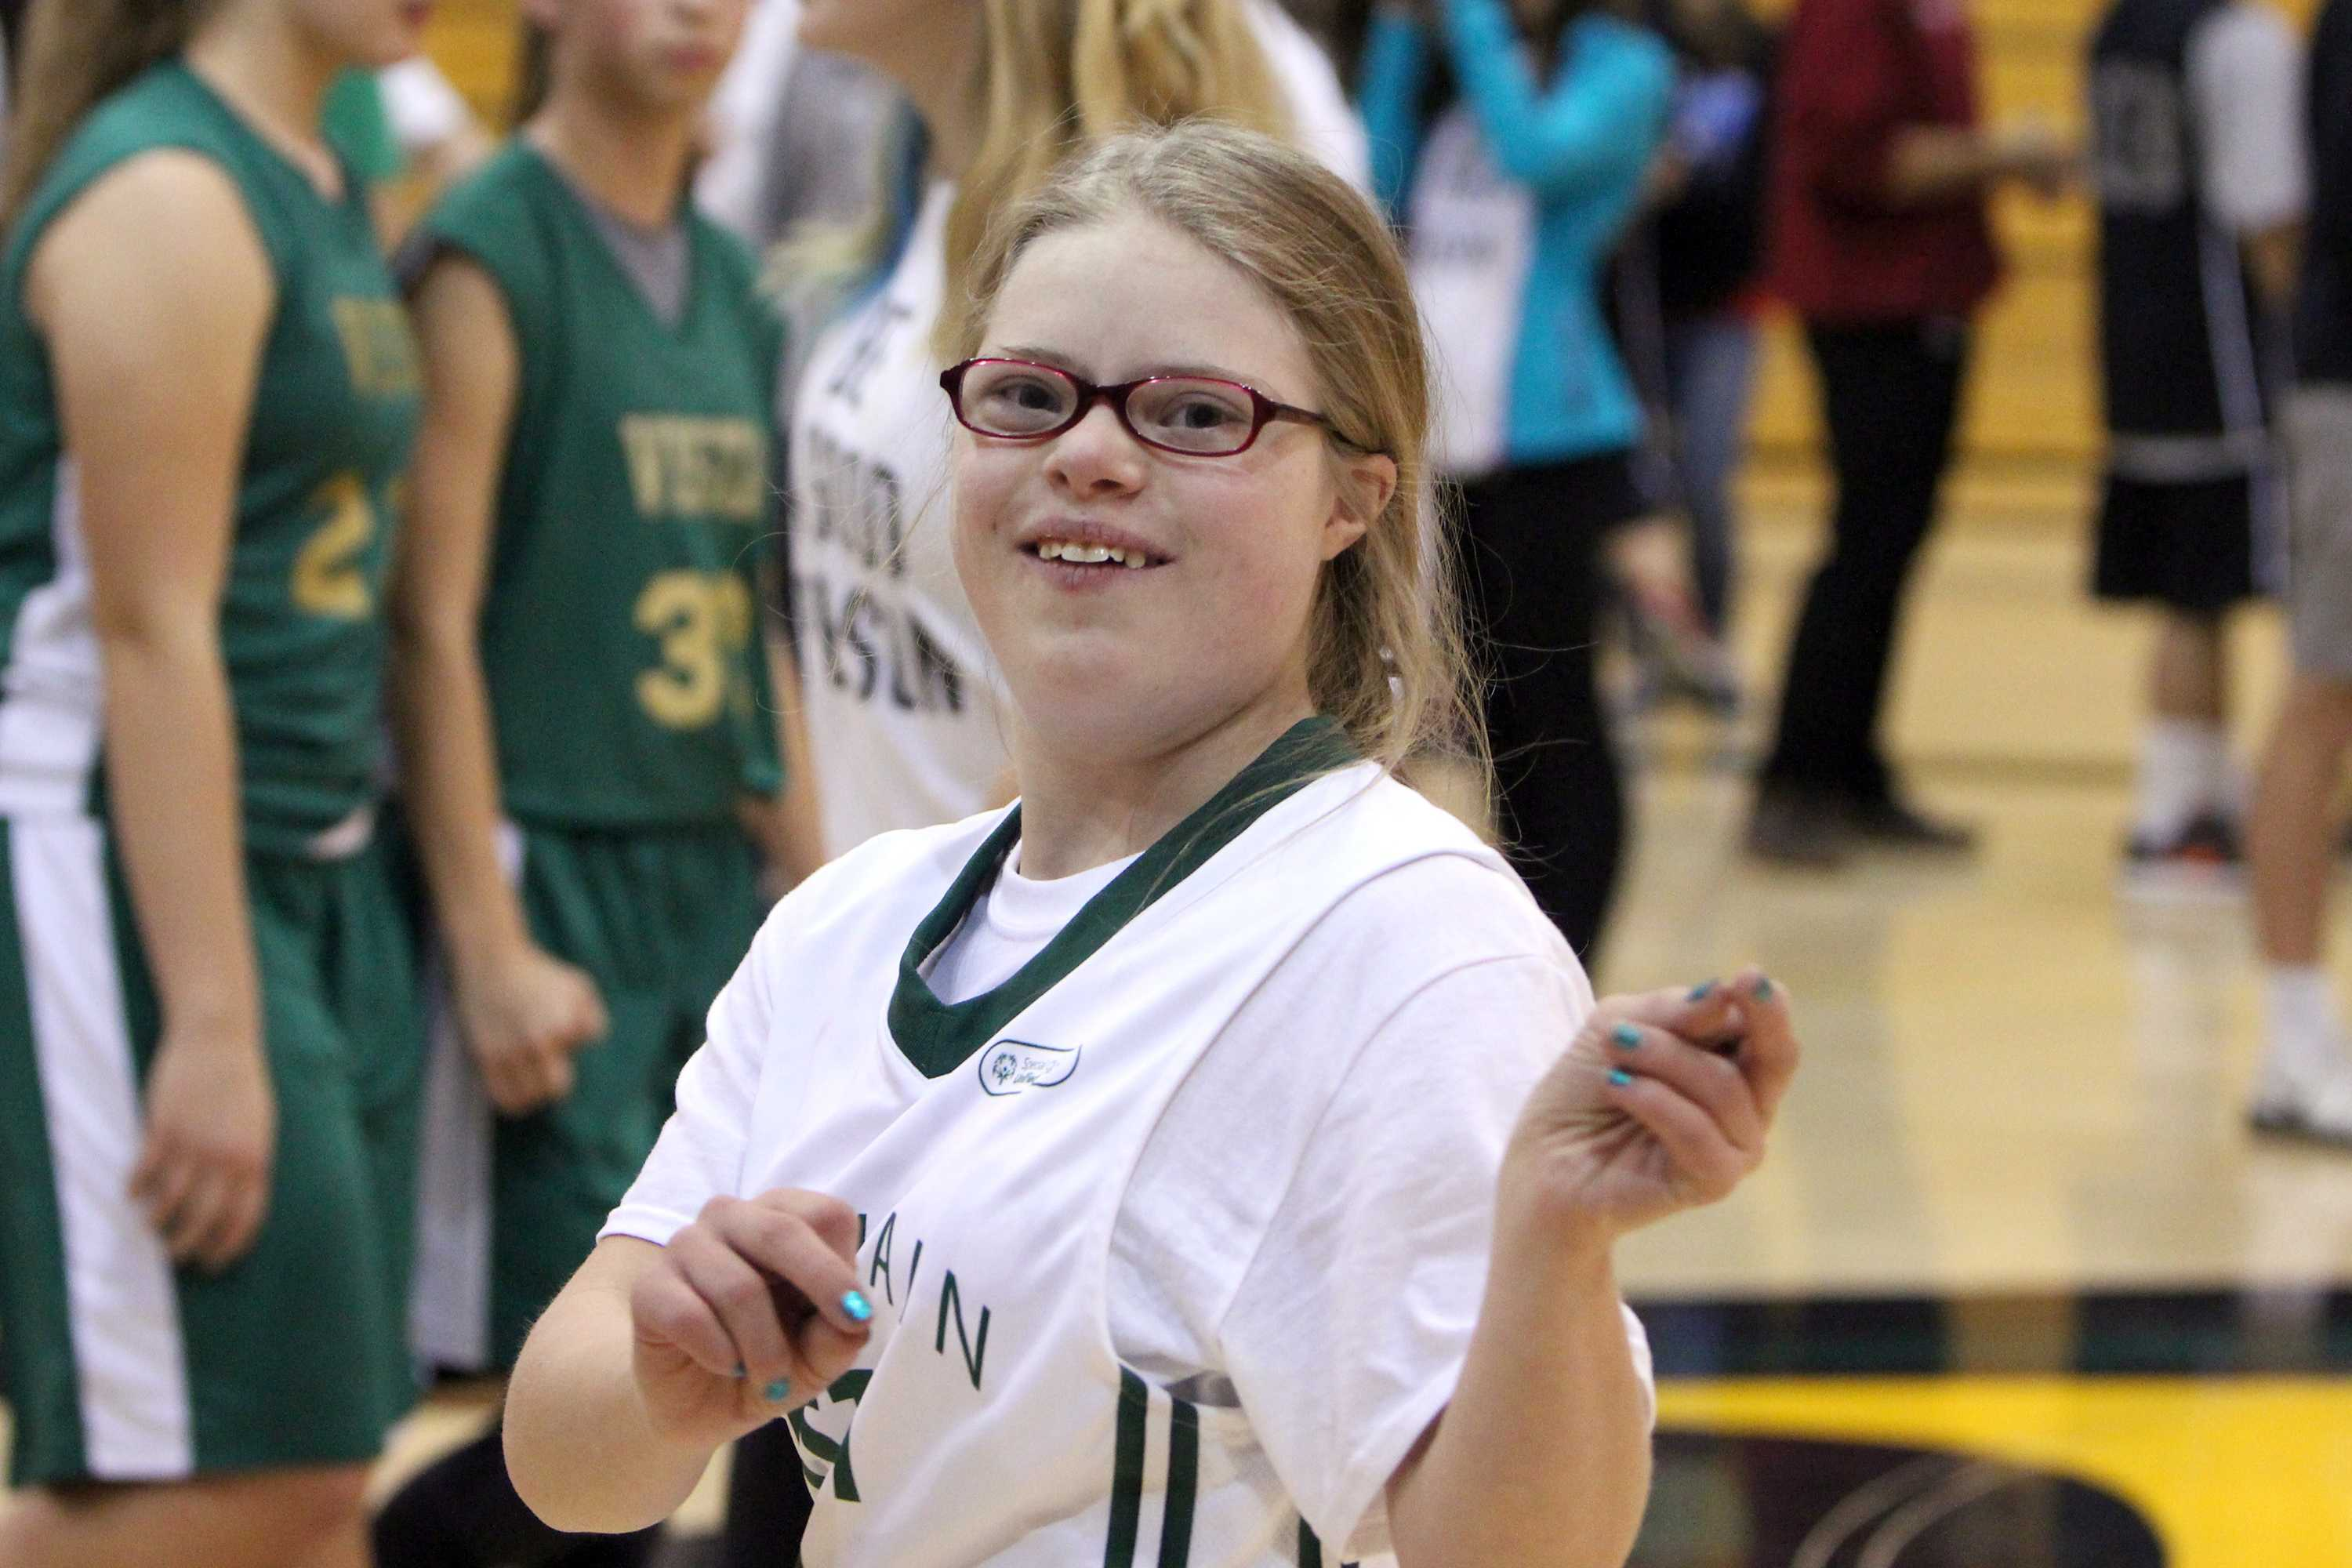 PHOTOS: Unified Basketball vs. Highlands Ranch